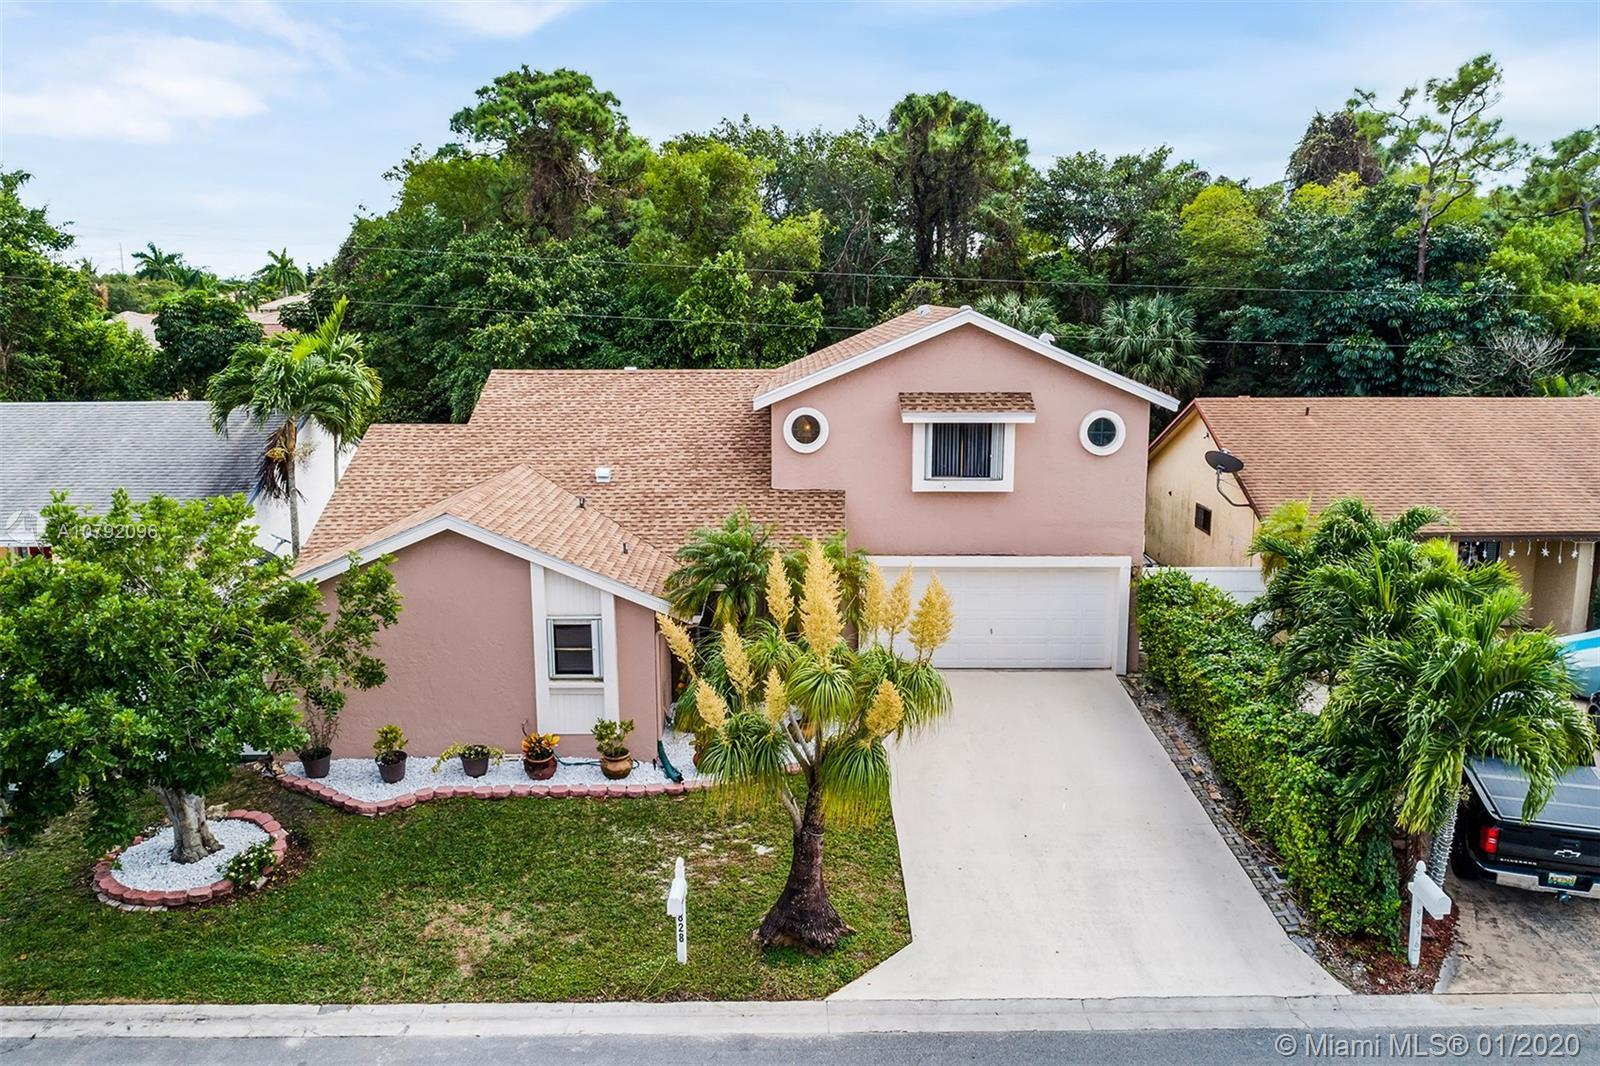 BOCA RATON BEAUTY!  THIS ABSOLUTELY CHARMING HOME WILL NOT DISAPPOINT! FEATURES INCLUDE OPEN FLOOR P